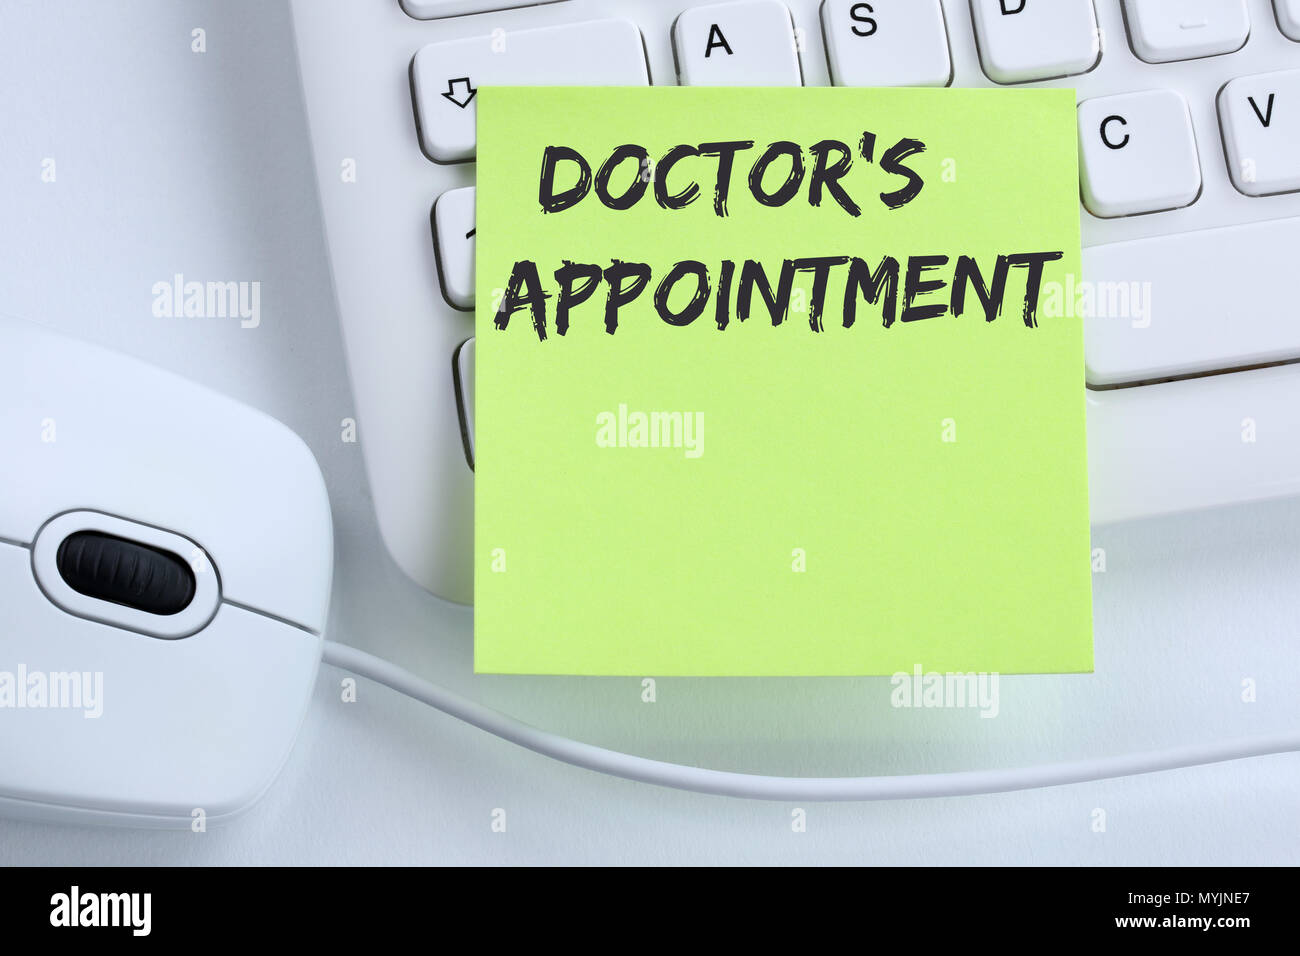 Doctor's medical appointment doctor medicine ill illness healthy health business concept mouse computer keyboard - Stock Image